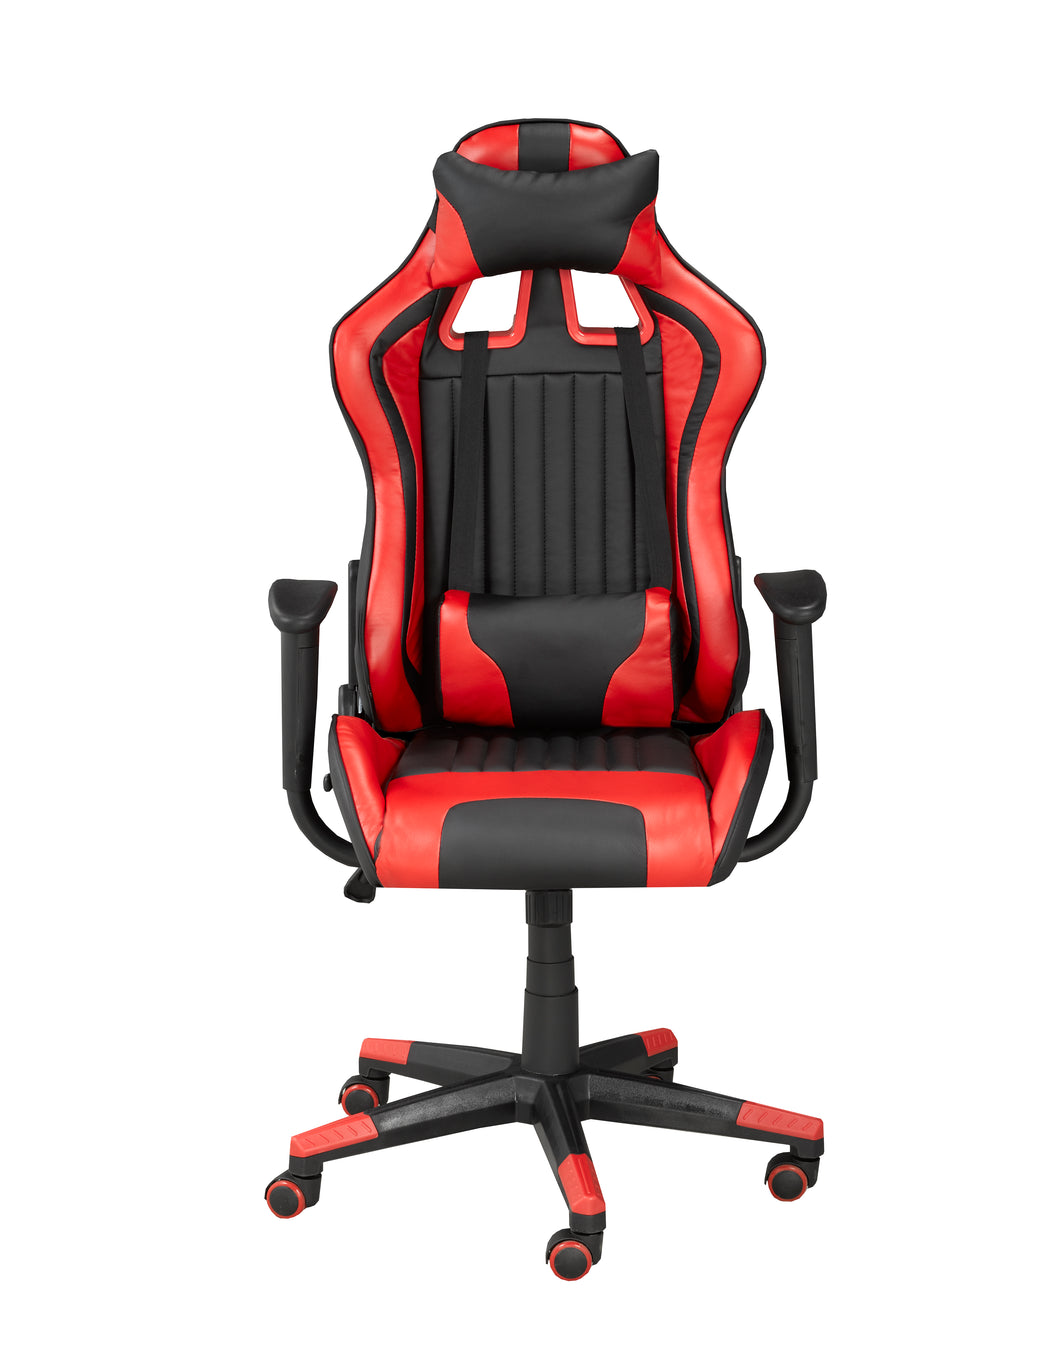 Avion Gaming Chair w/ Tilt - Red | Candace and Basil Furniture